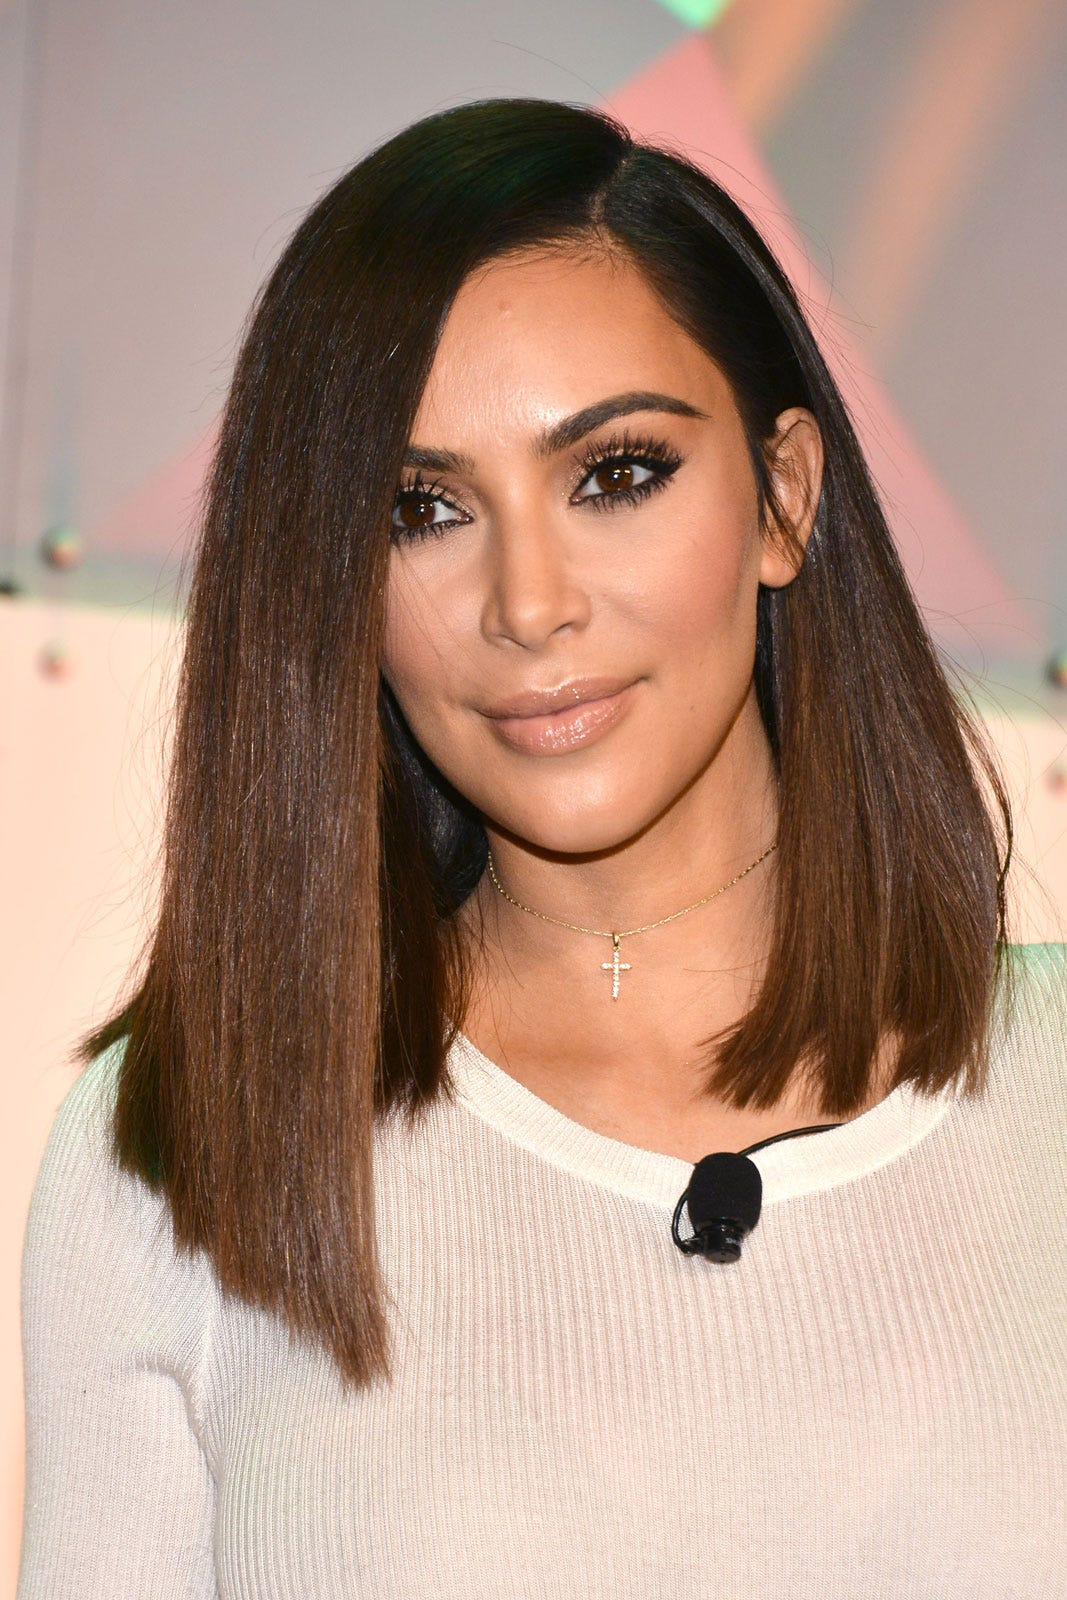 Kim Kardashian Hair Same Wigs Shay Mitchell Photos 1a1503b401de